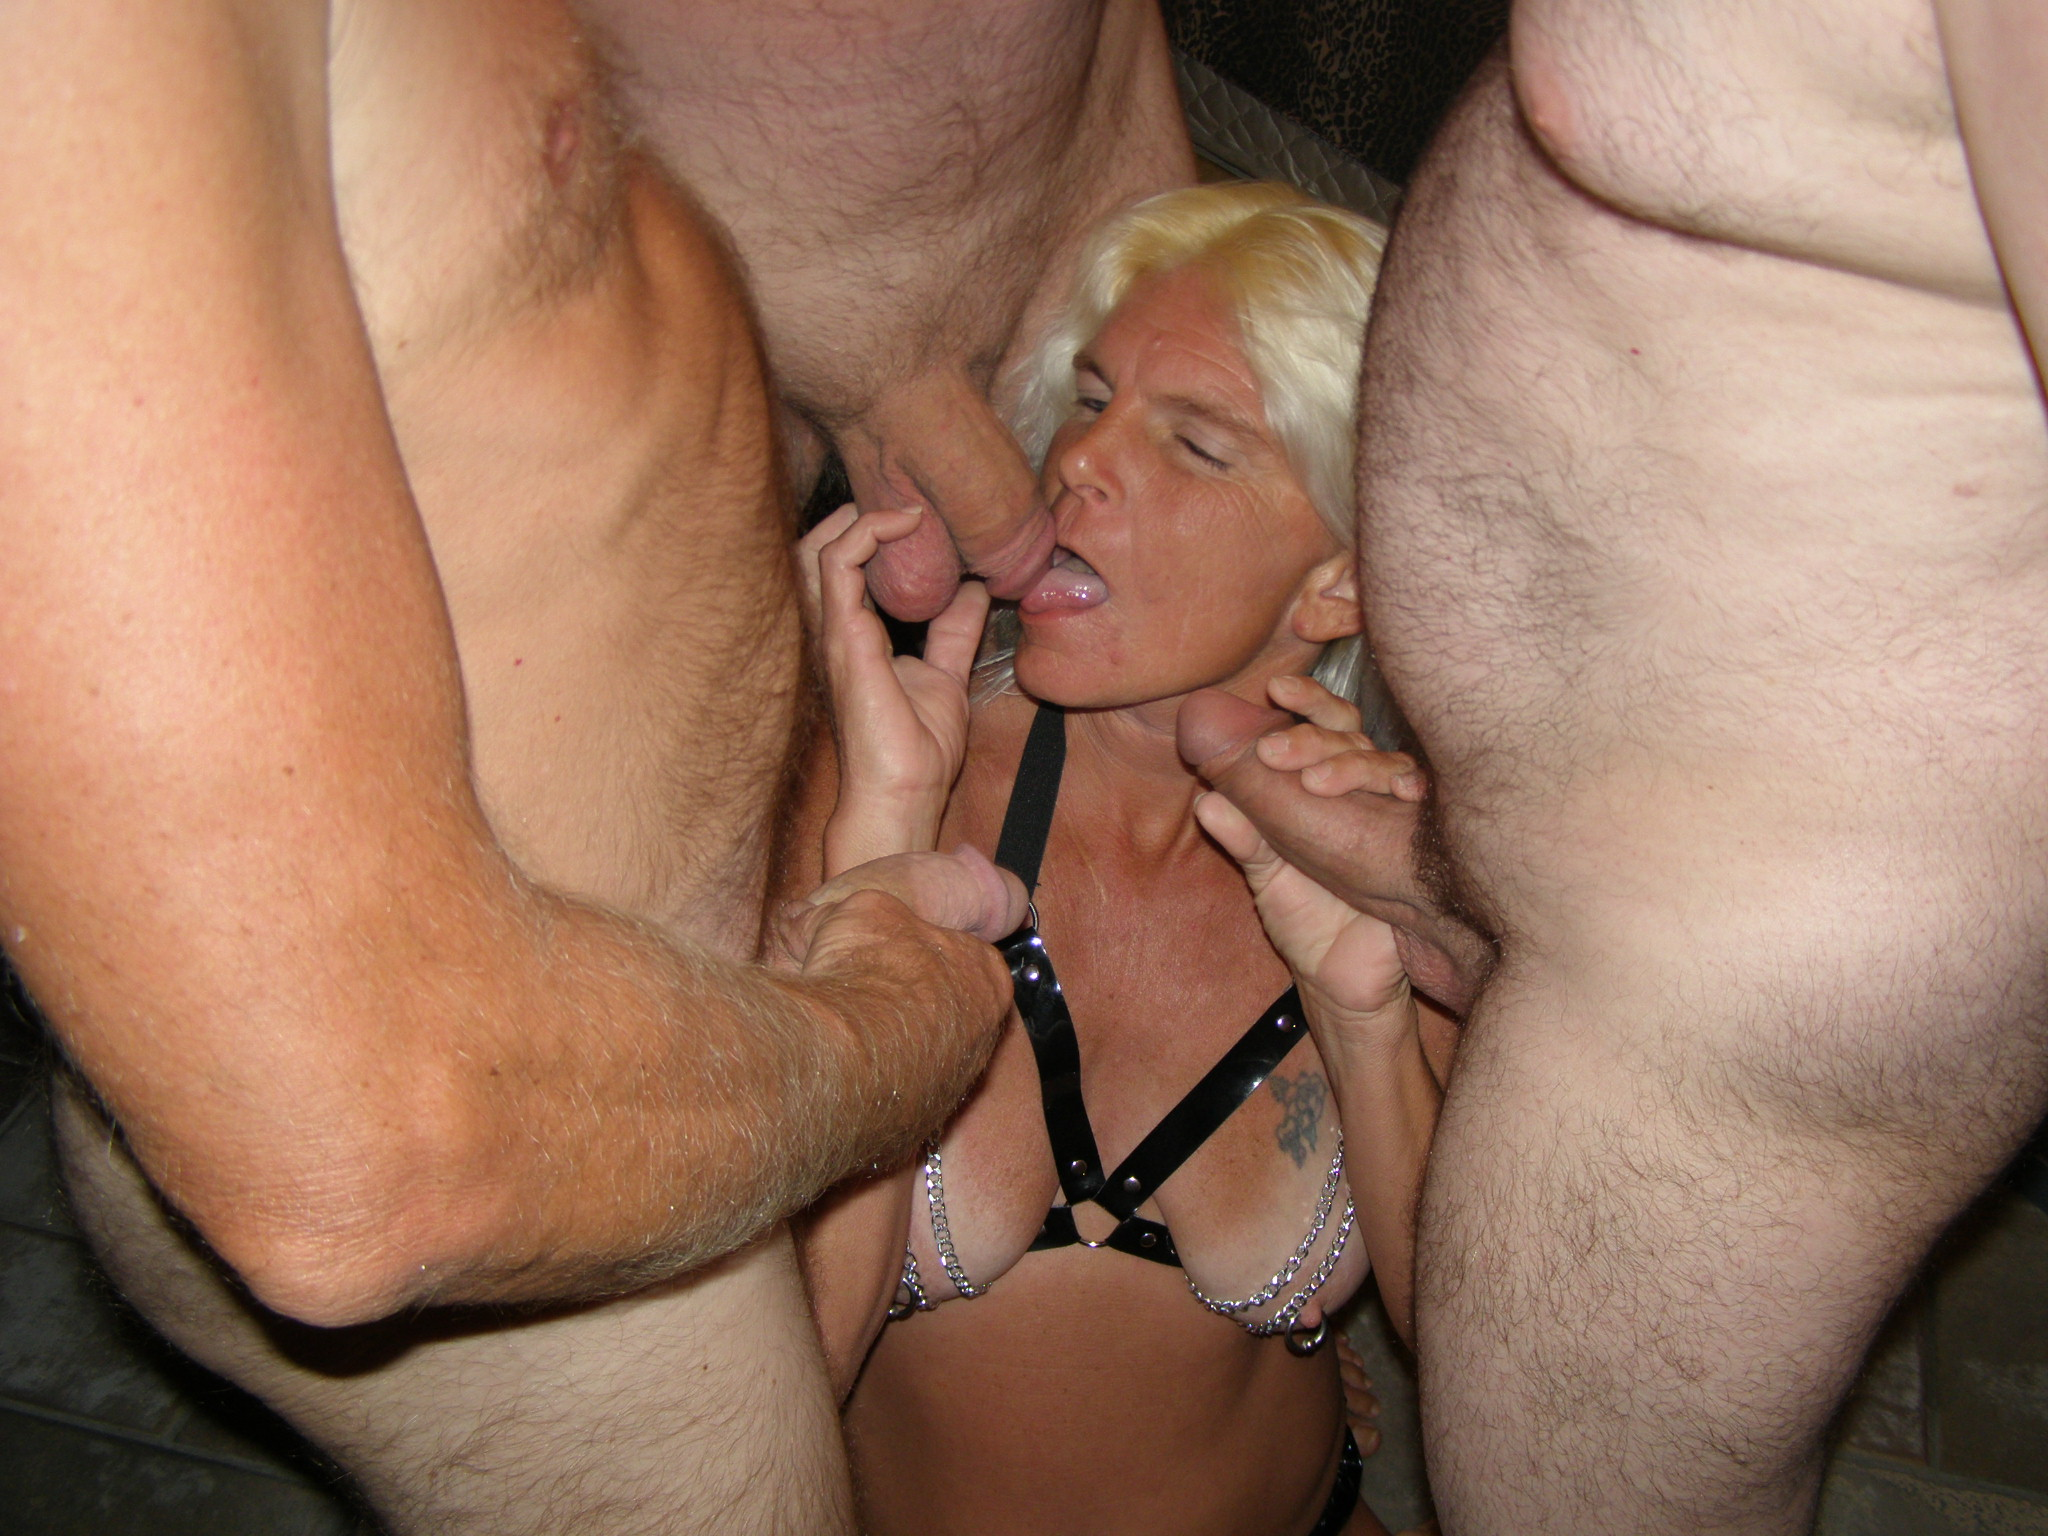 Real amateur slut wife gangbang